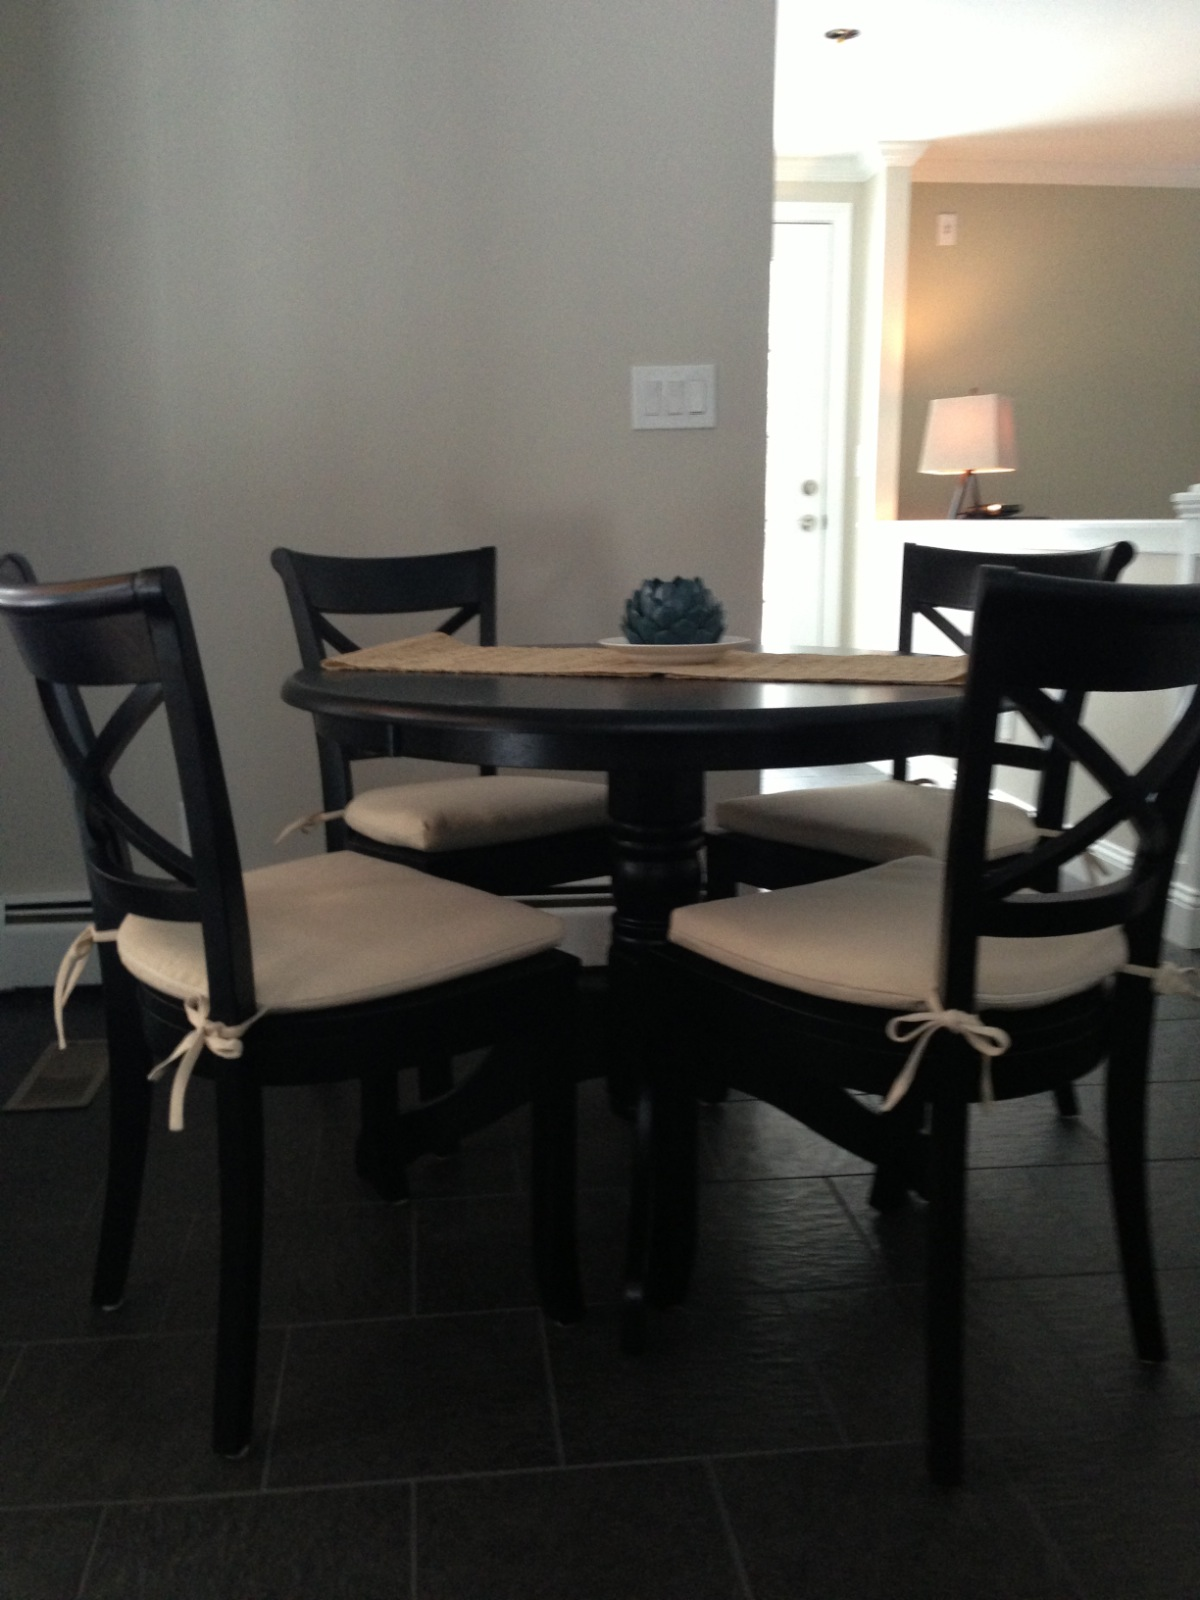 Fancy Kitchen Table Shelves and Light Fixture